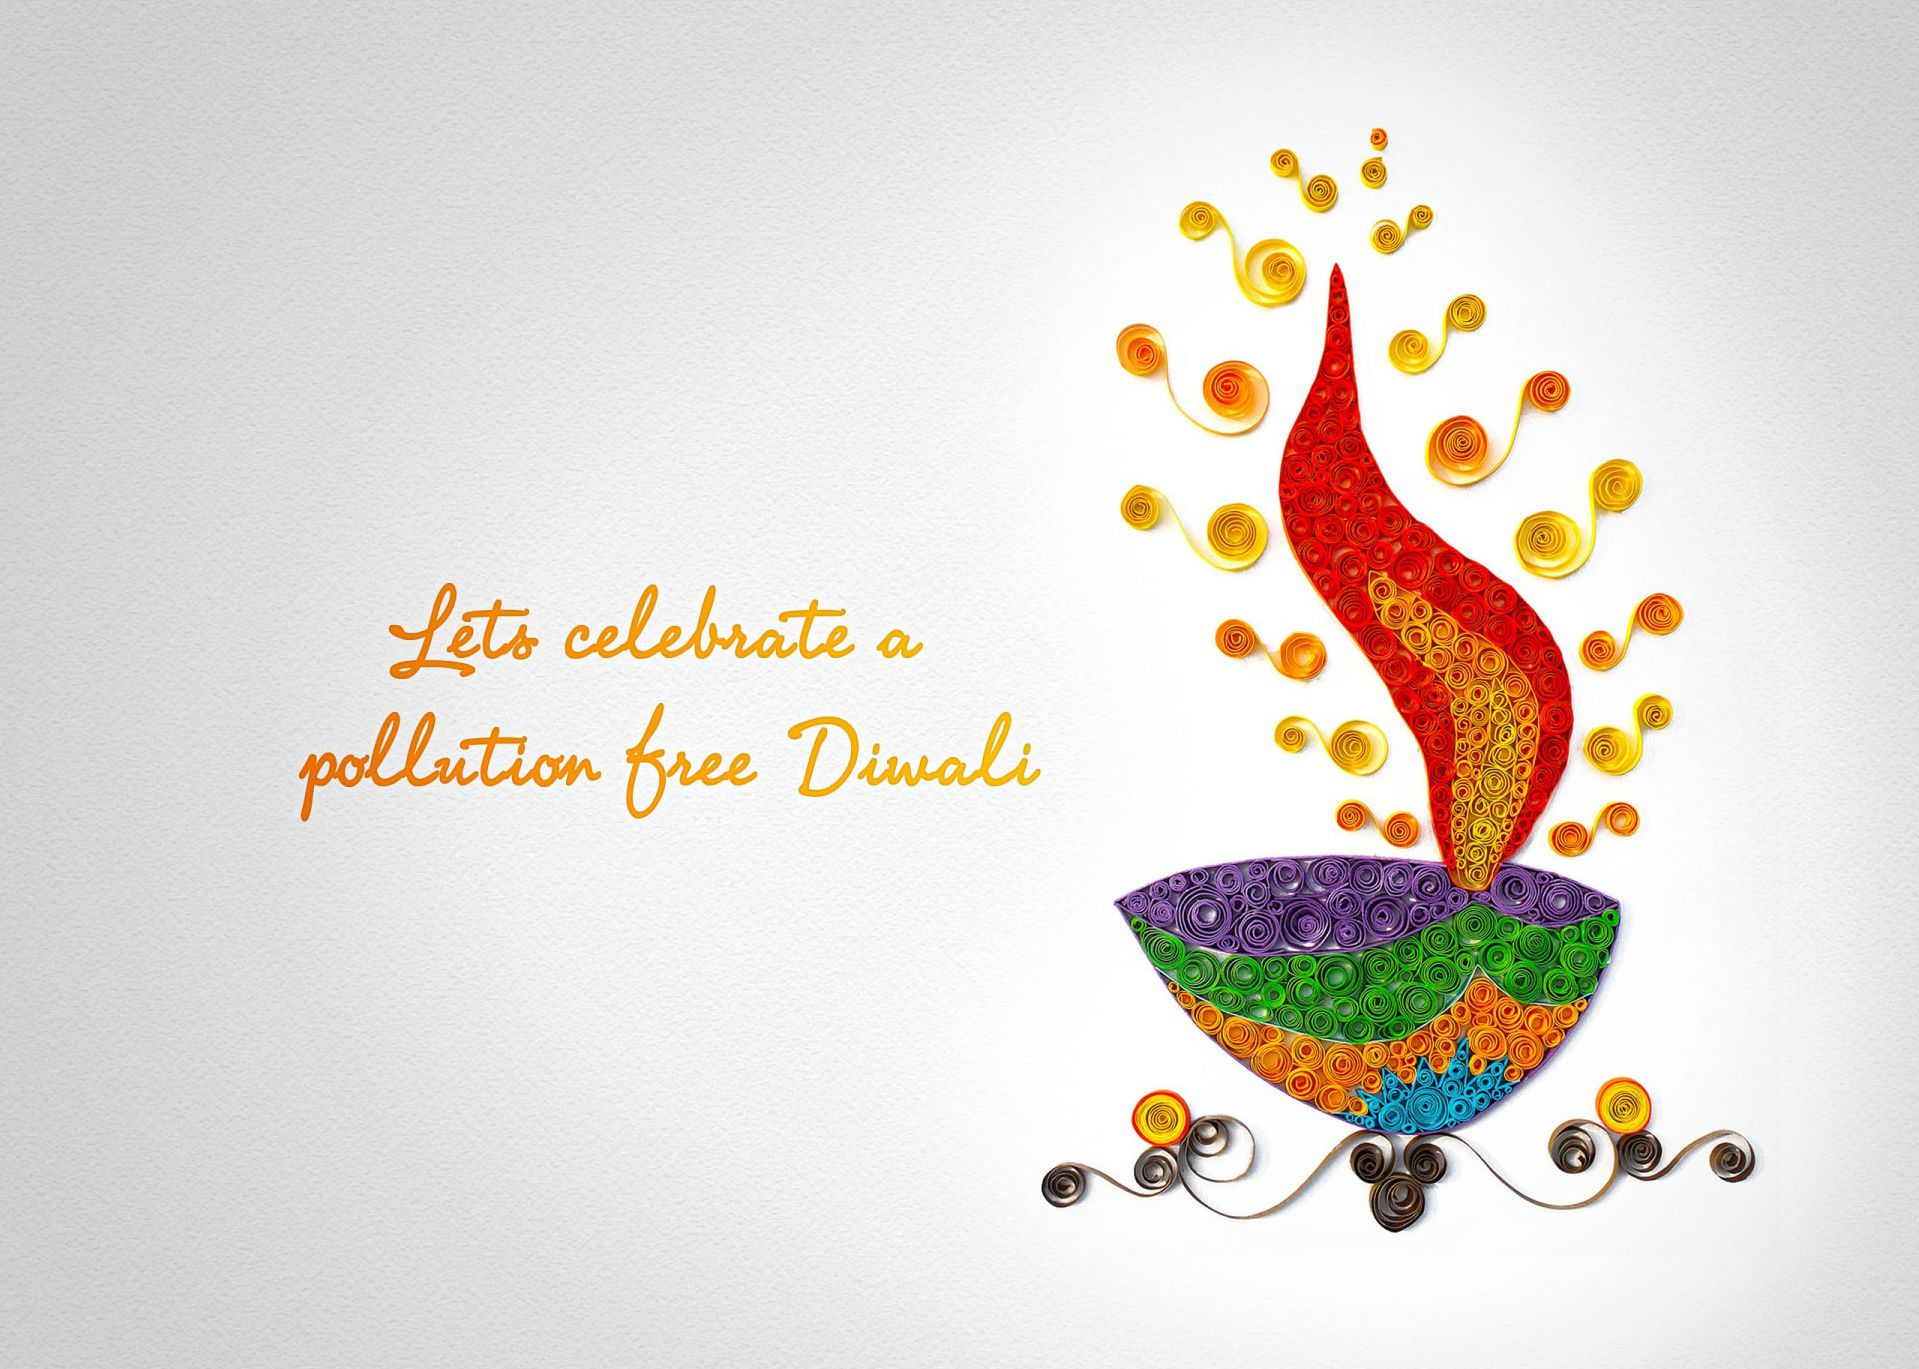 Happy Shubh Diwali Images for You